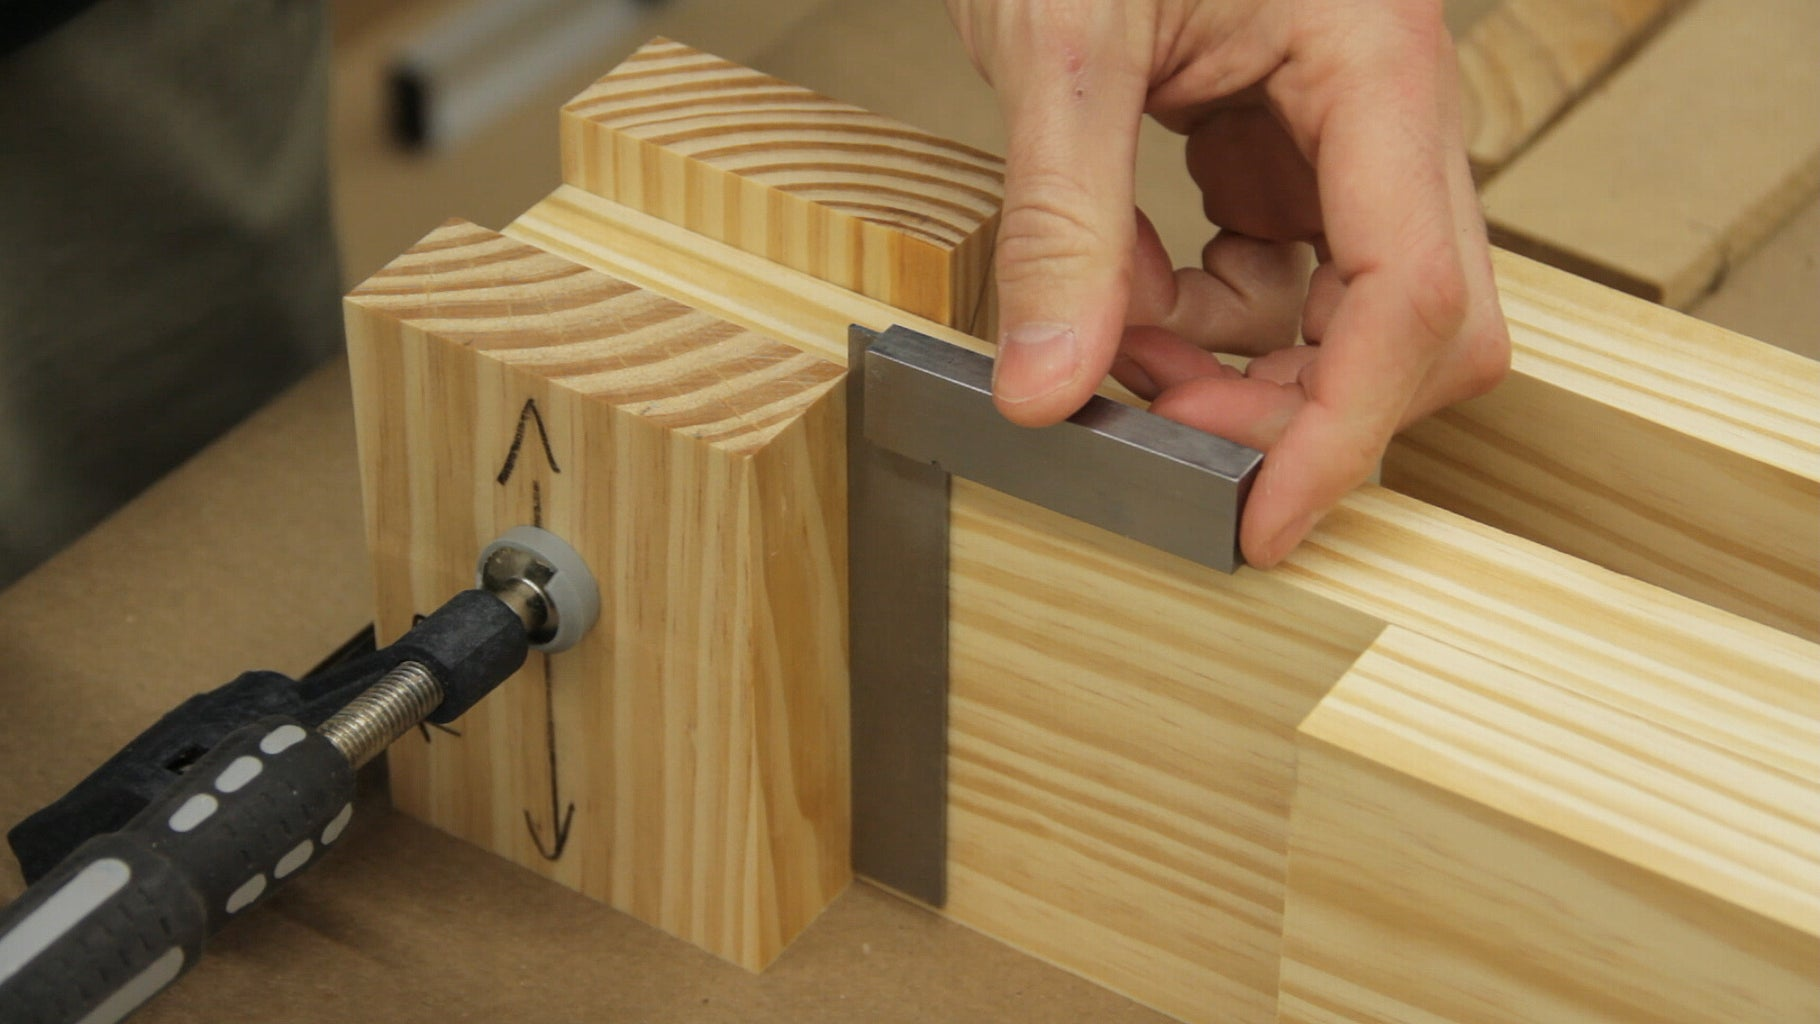 Laminating the Leg's Tenon and Lap Joints